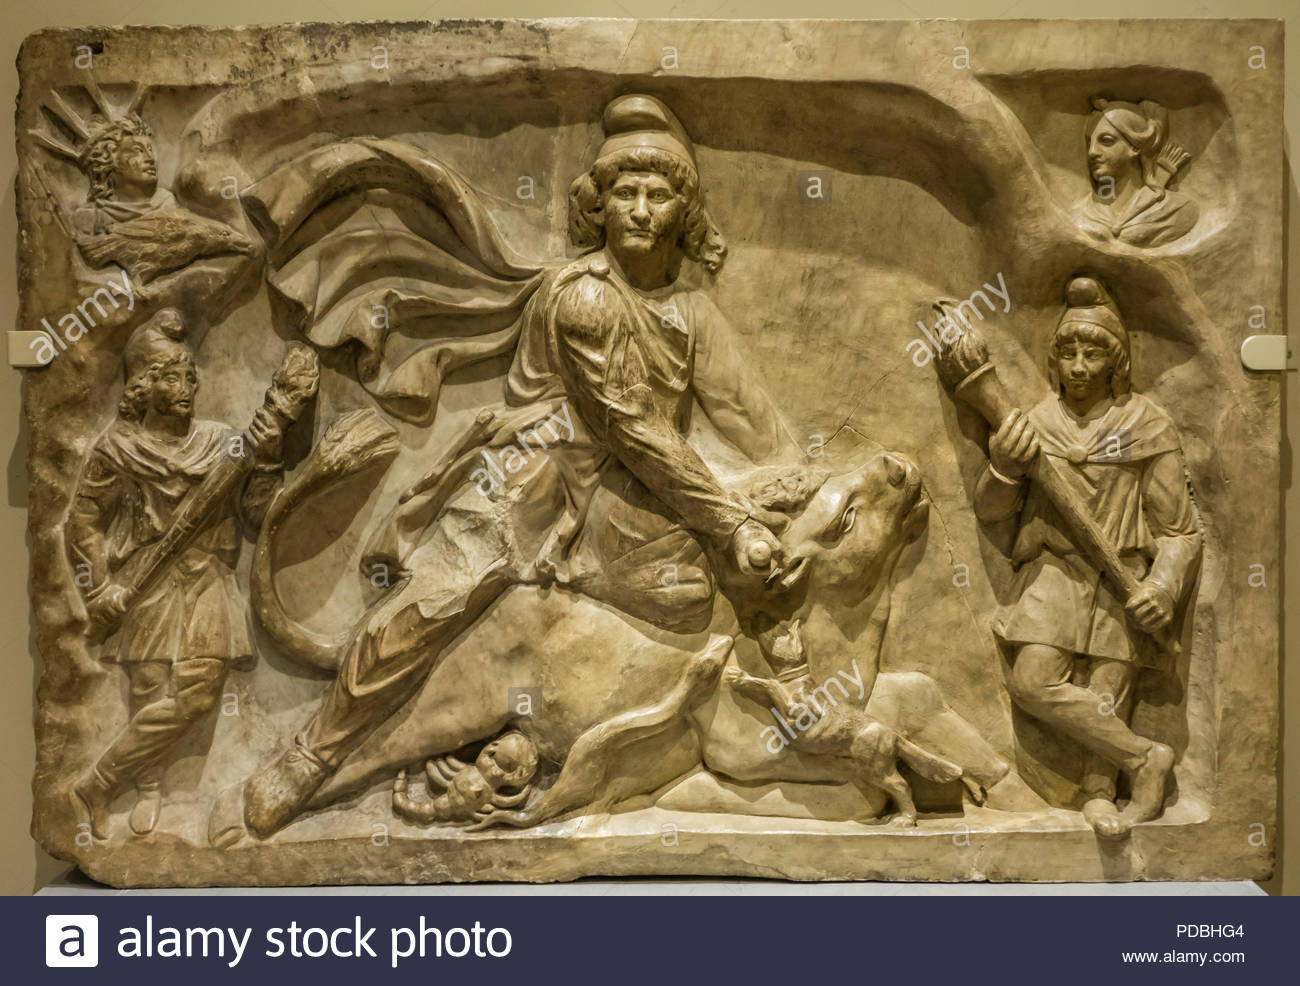 Persian god Mithras Roman cult slaying of mystic bull triumph of good over evil at Royal Ontario Museum ROM in Toronto Ontario Canada - Stock Image